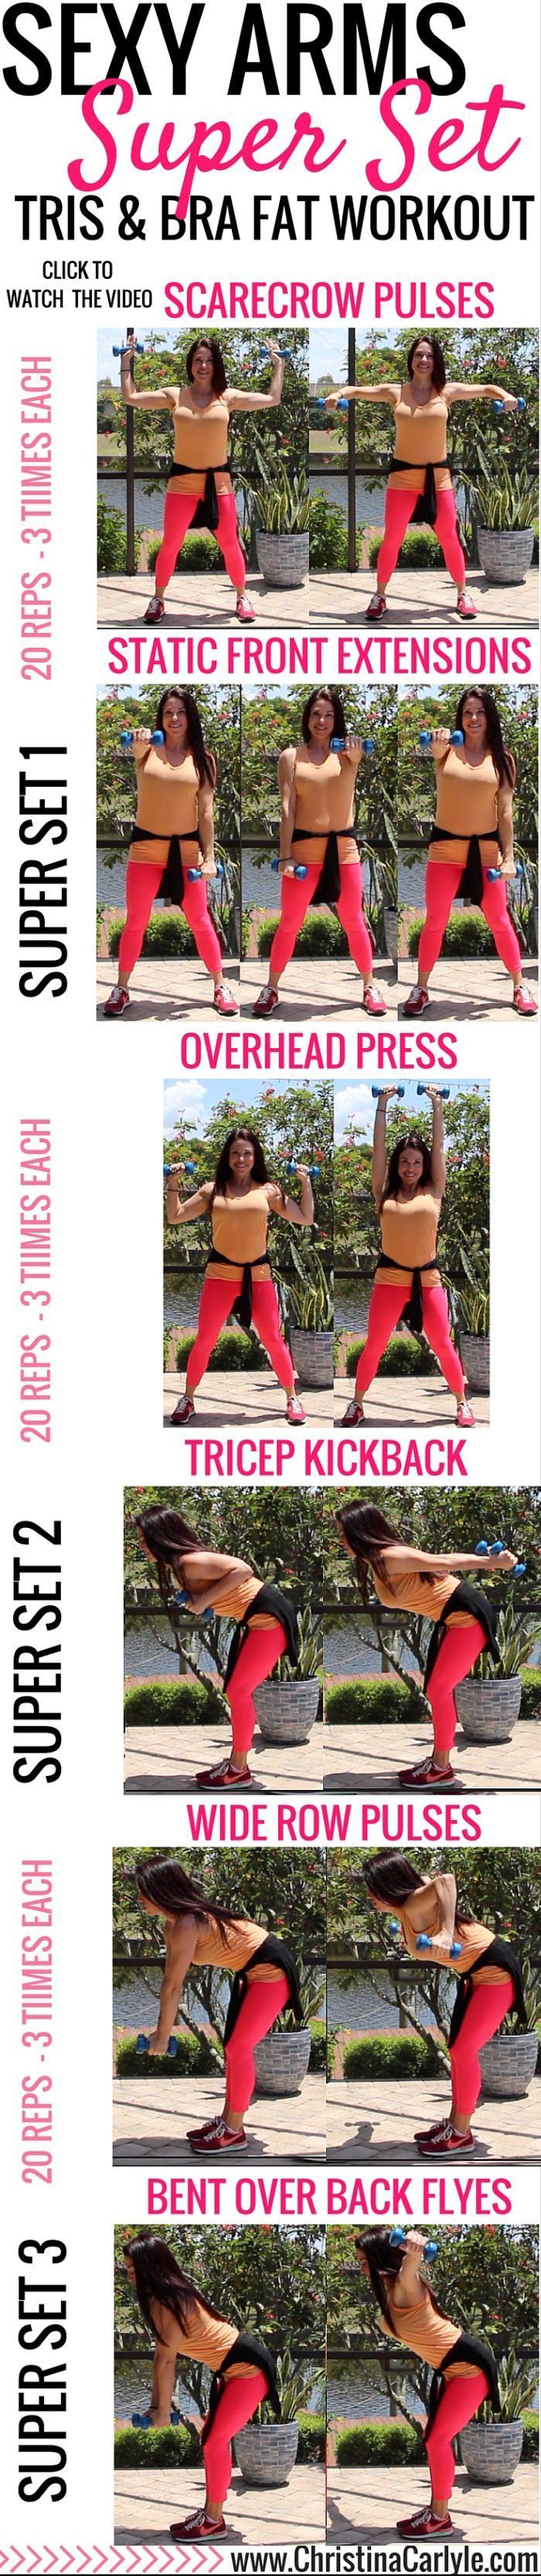 upper-body-workout-for-women-christina-carlyle